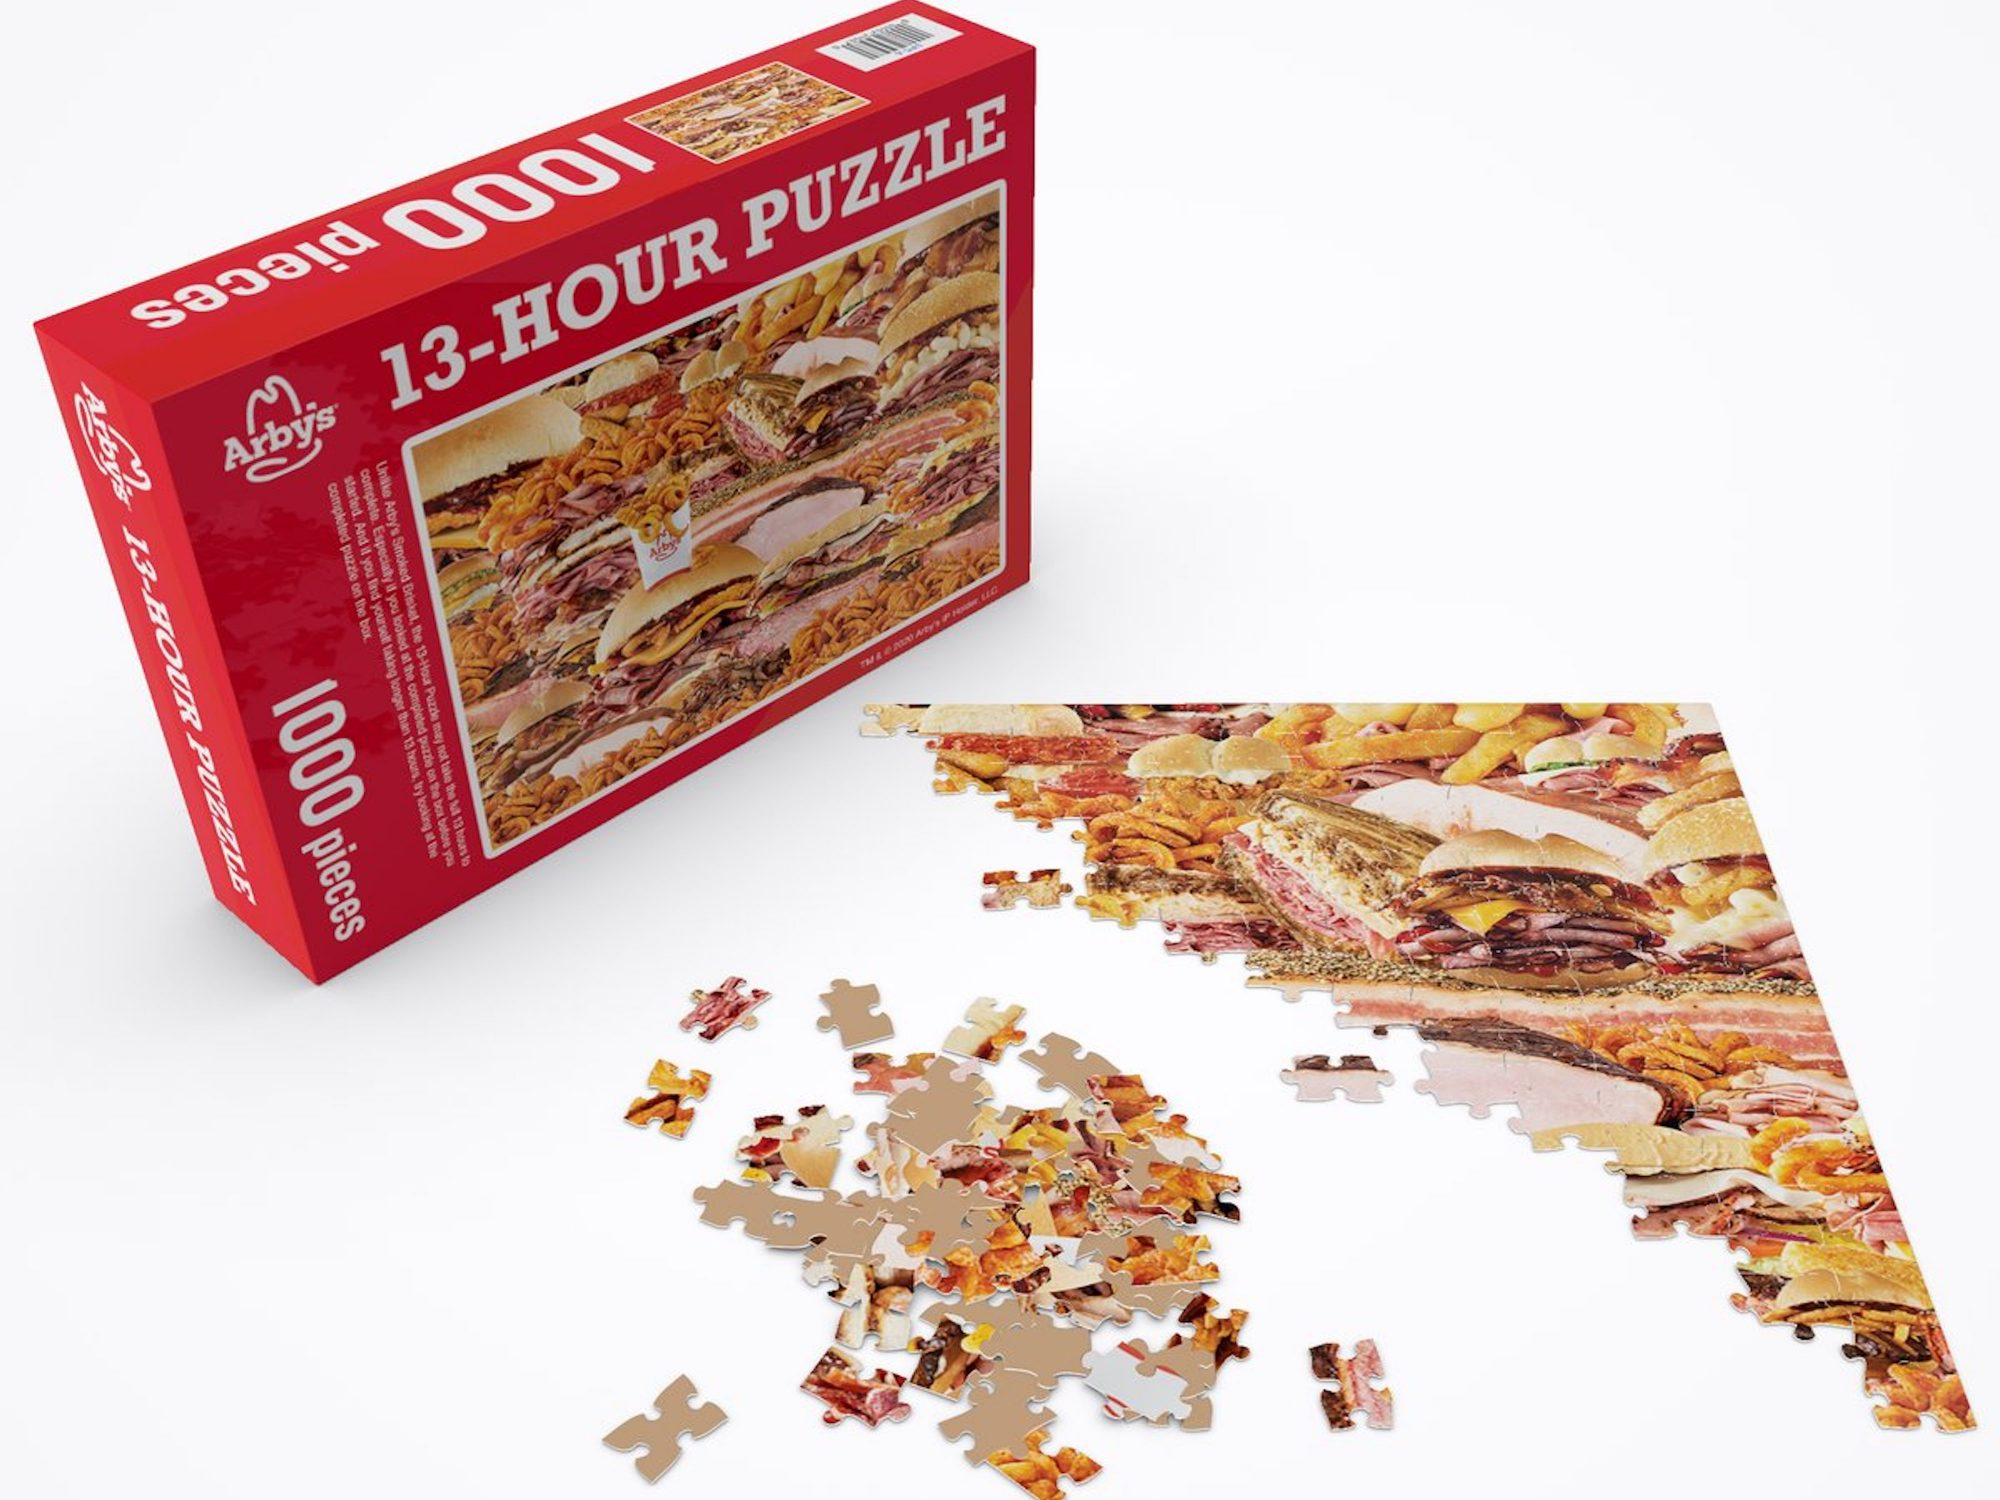 arbys-meat-puzzle